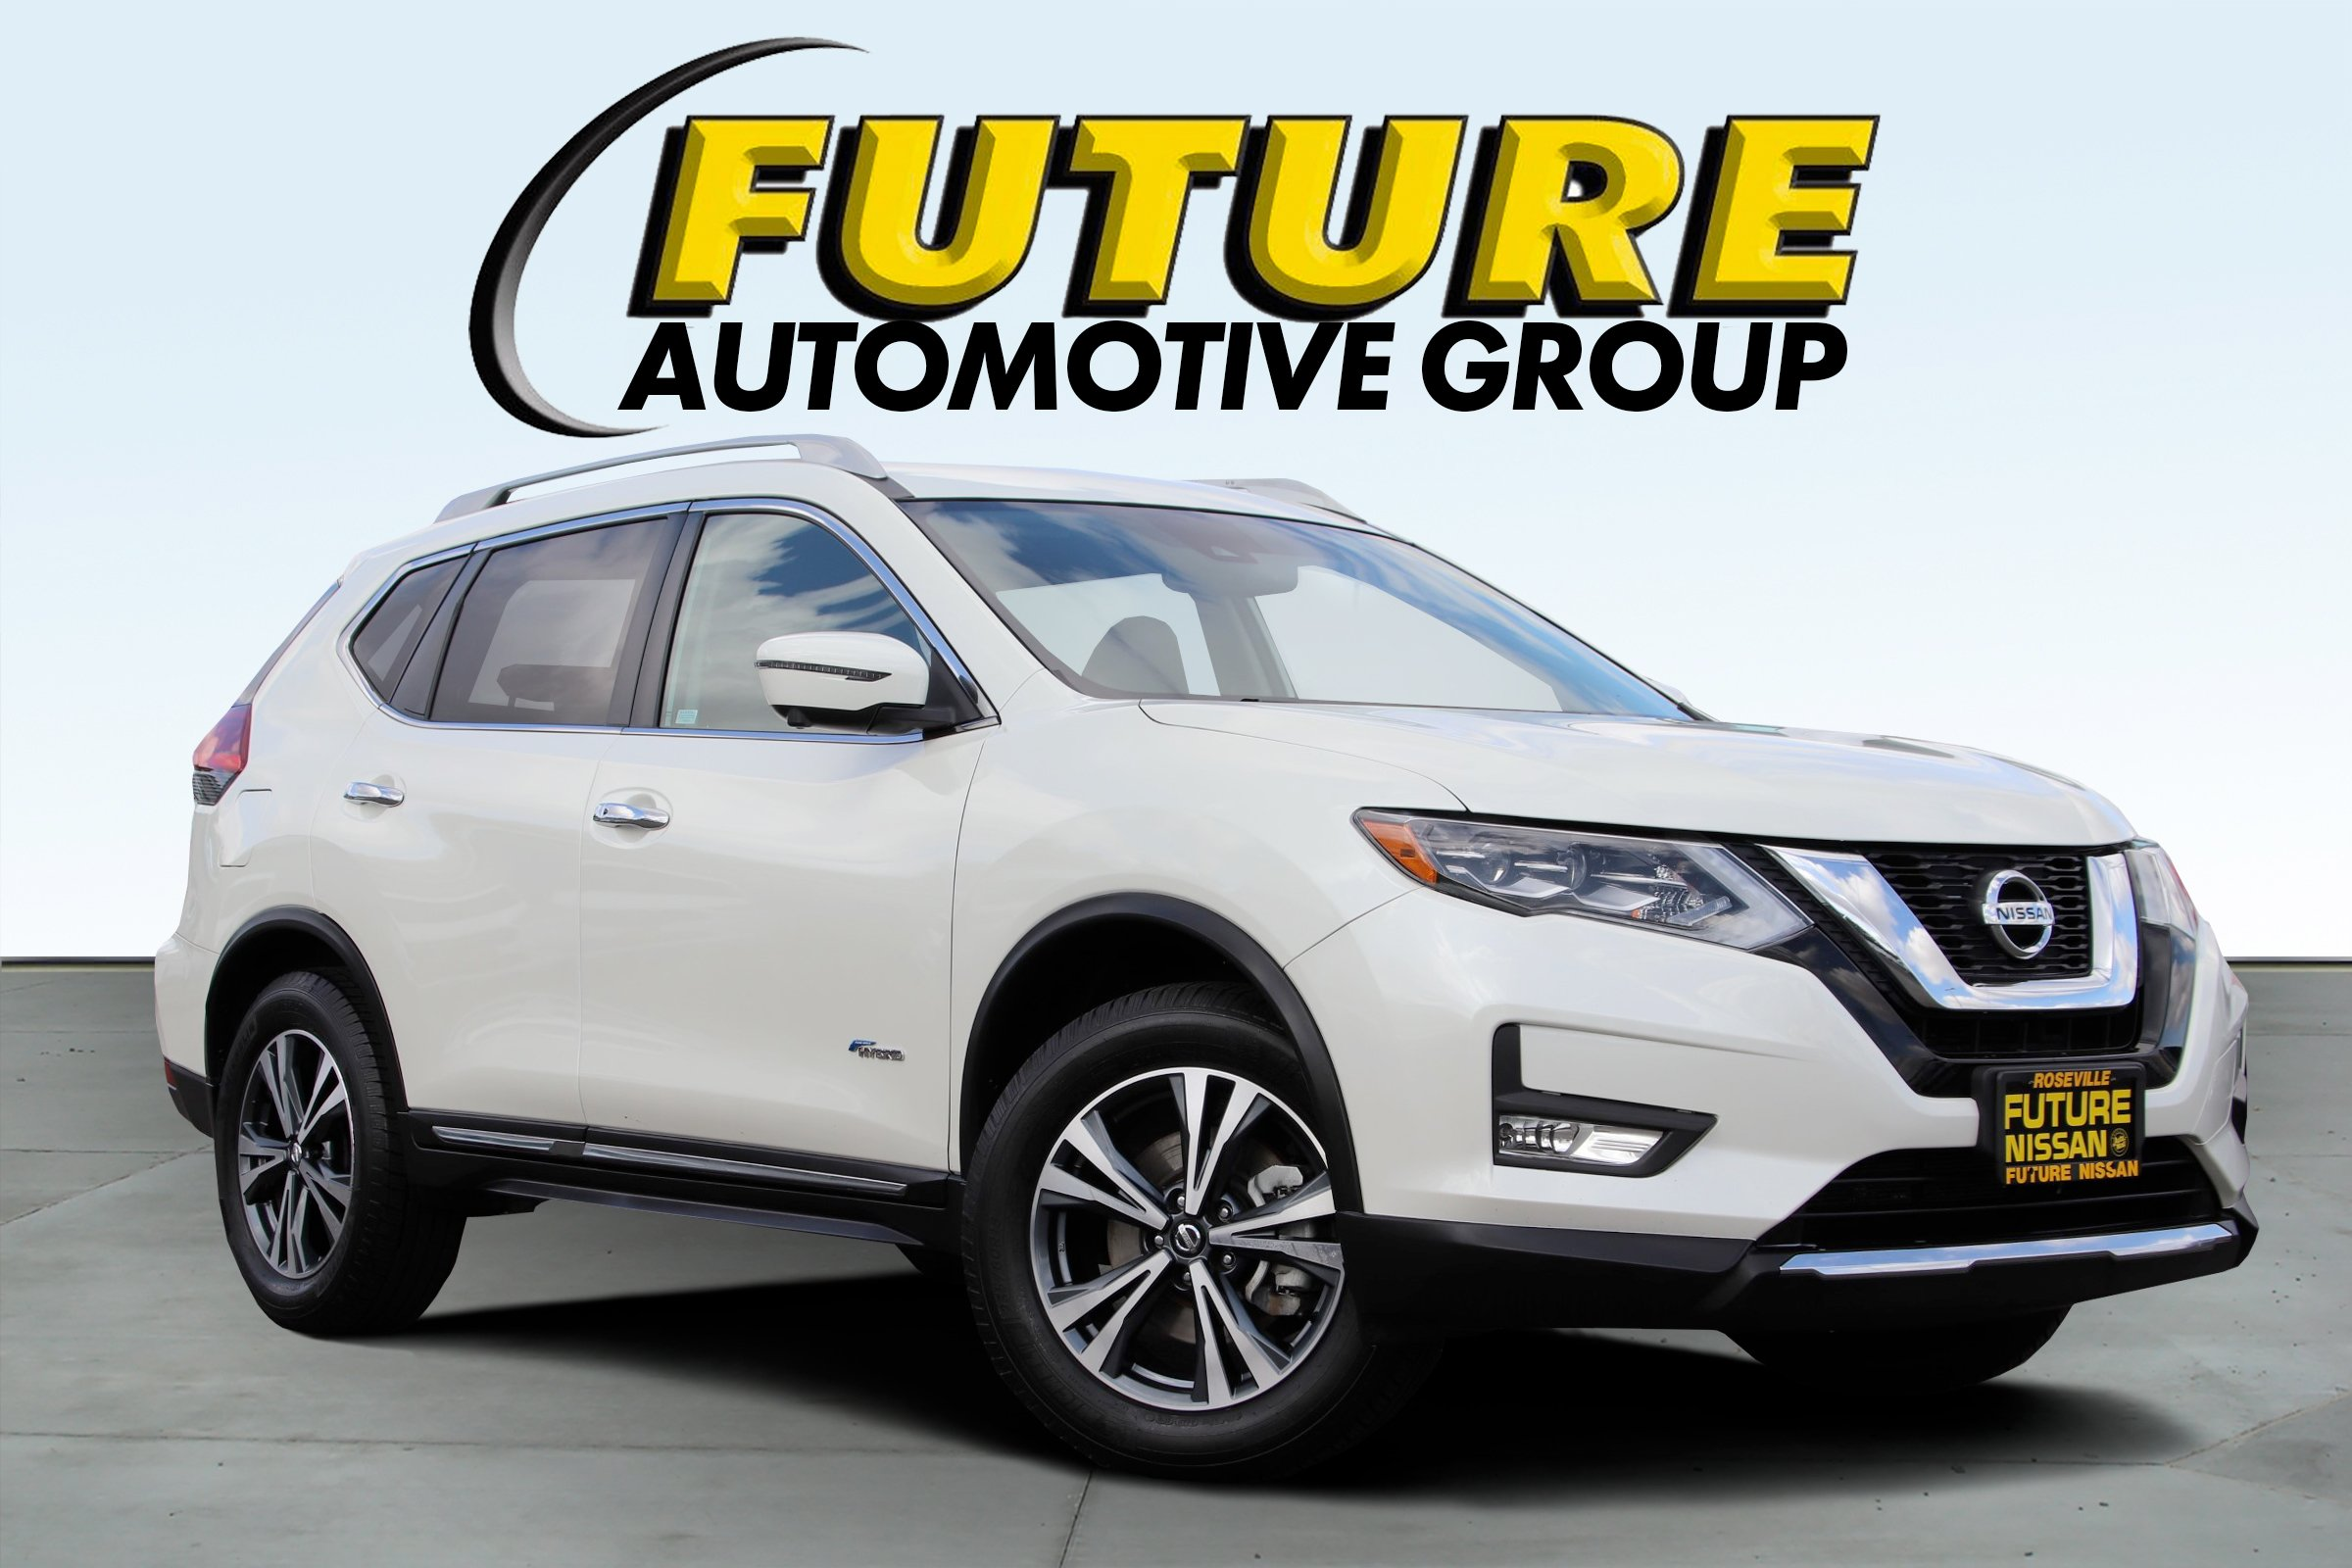 Certified Pre-Owned 2017 Nissan Rogue SL Hybrid